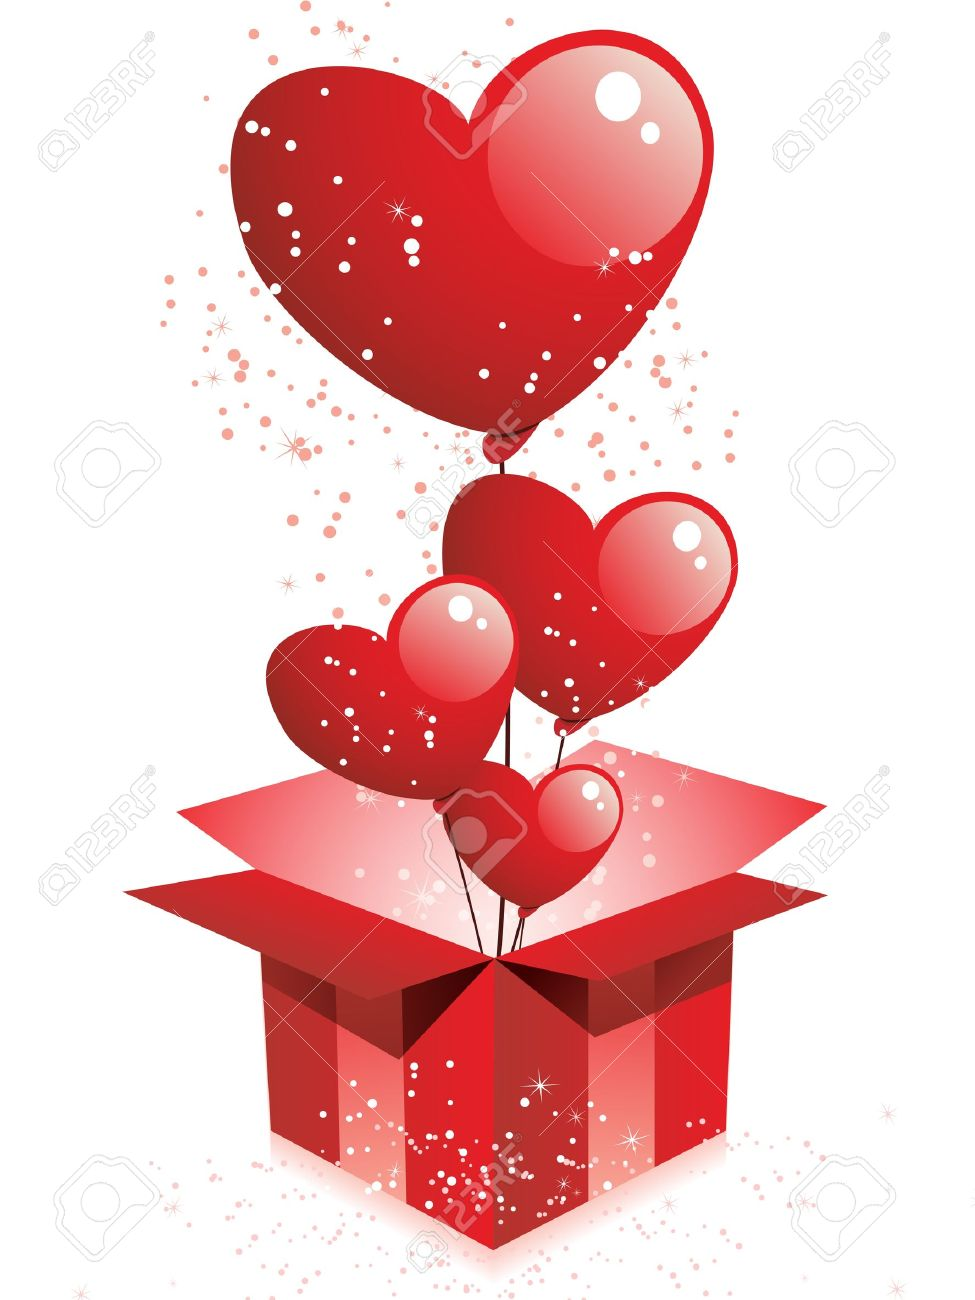 Vector Happy Valentine S Day Gift With Hearts Balloons Royalty